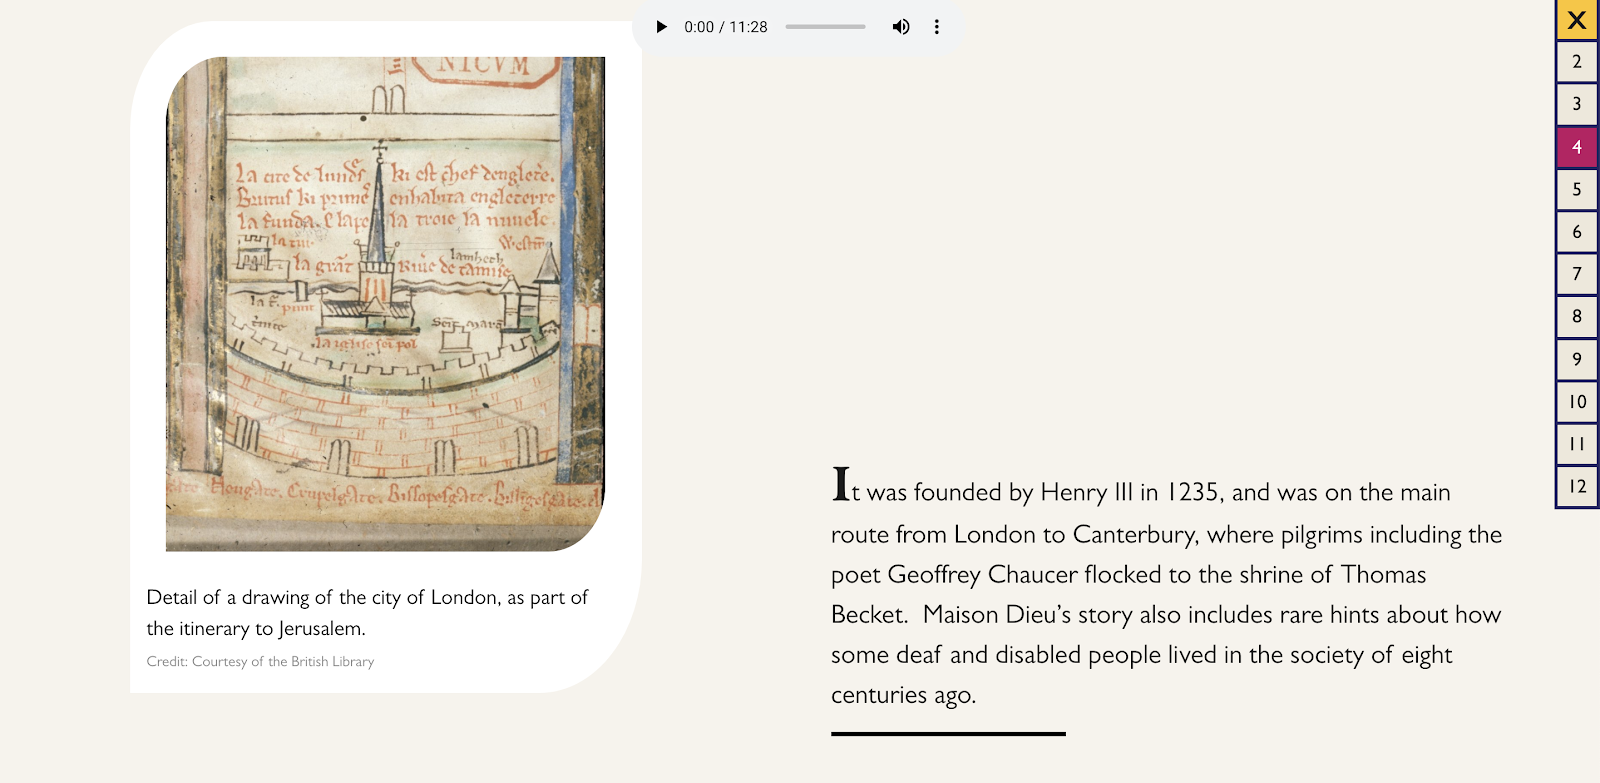 A web page with a mediaeval drawing of a city surrounding a cathedral alongside some descriptive text